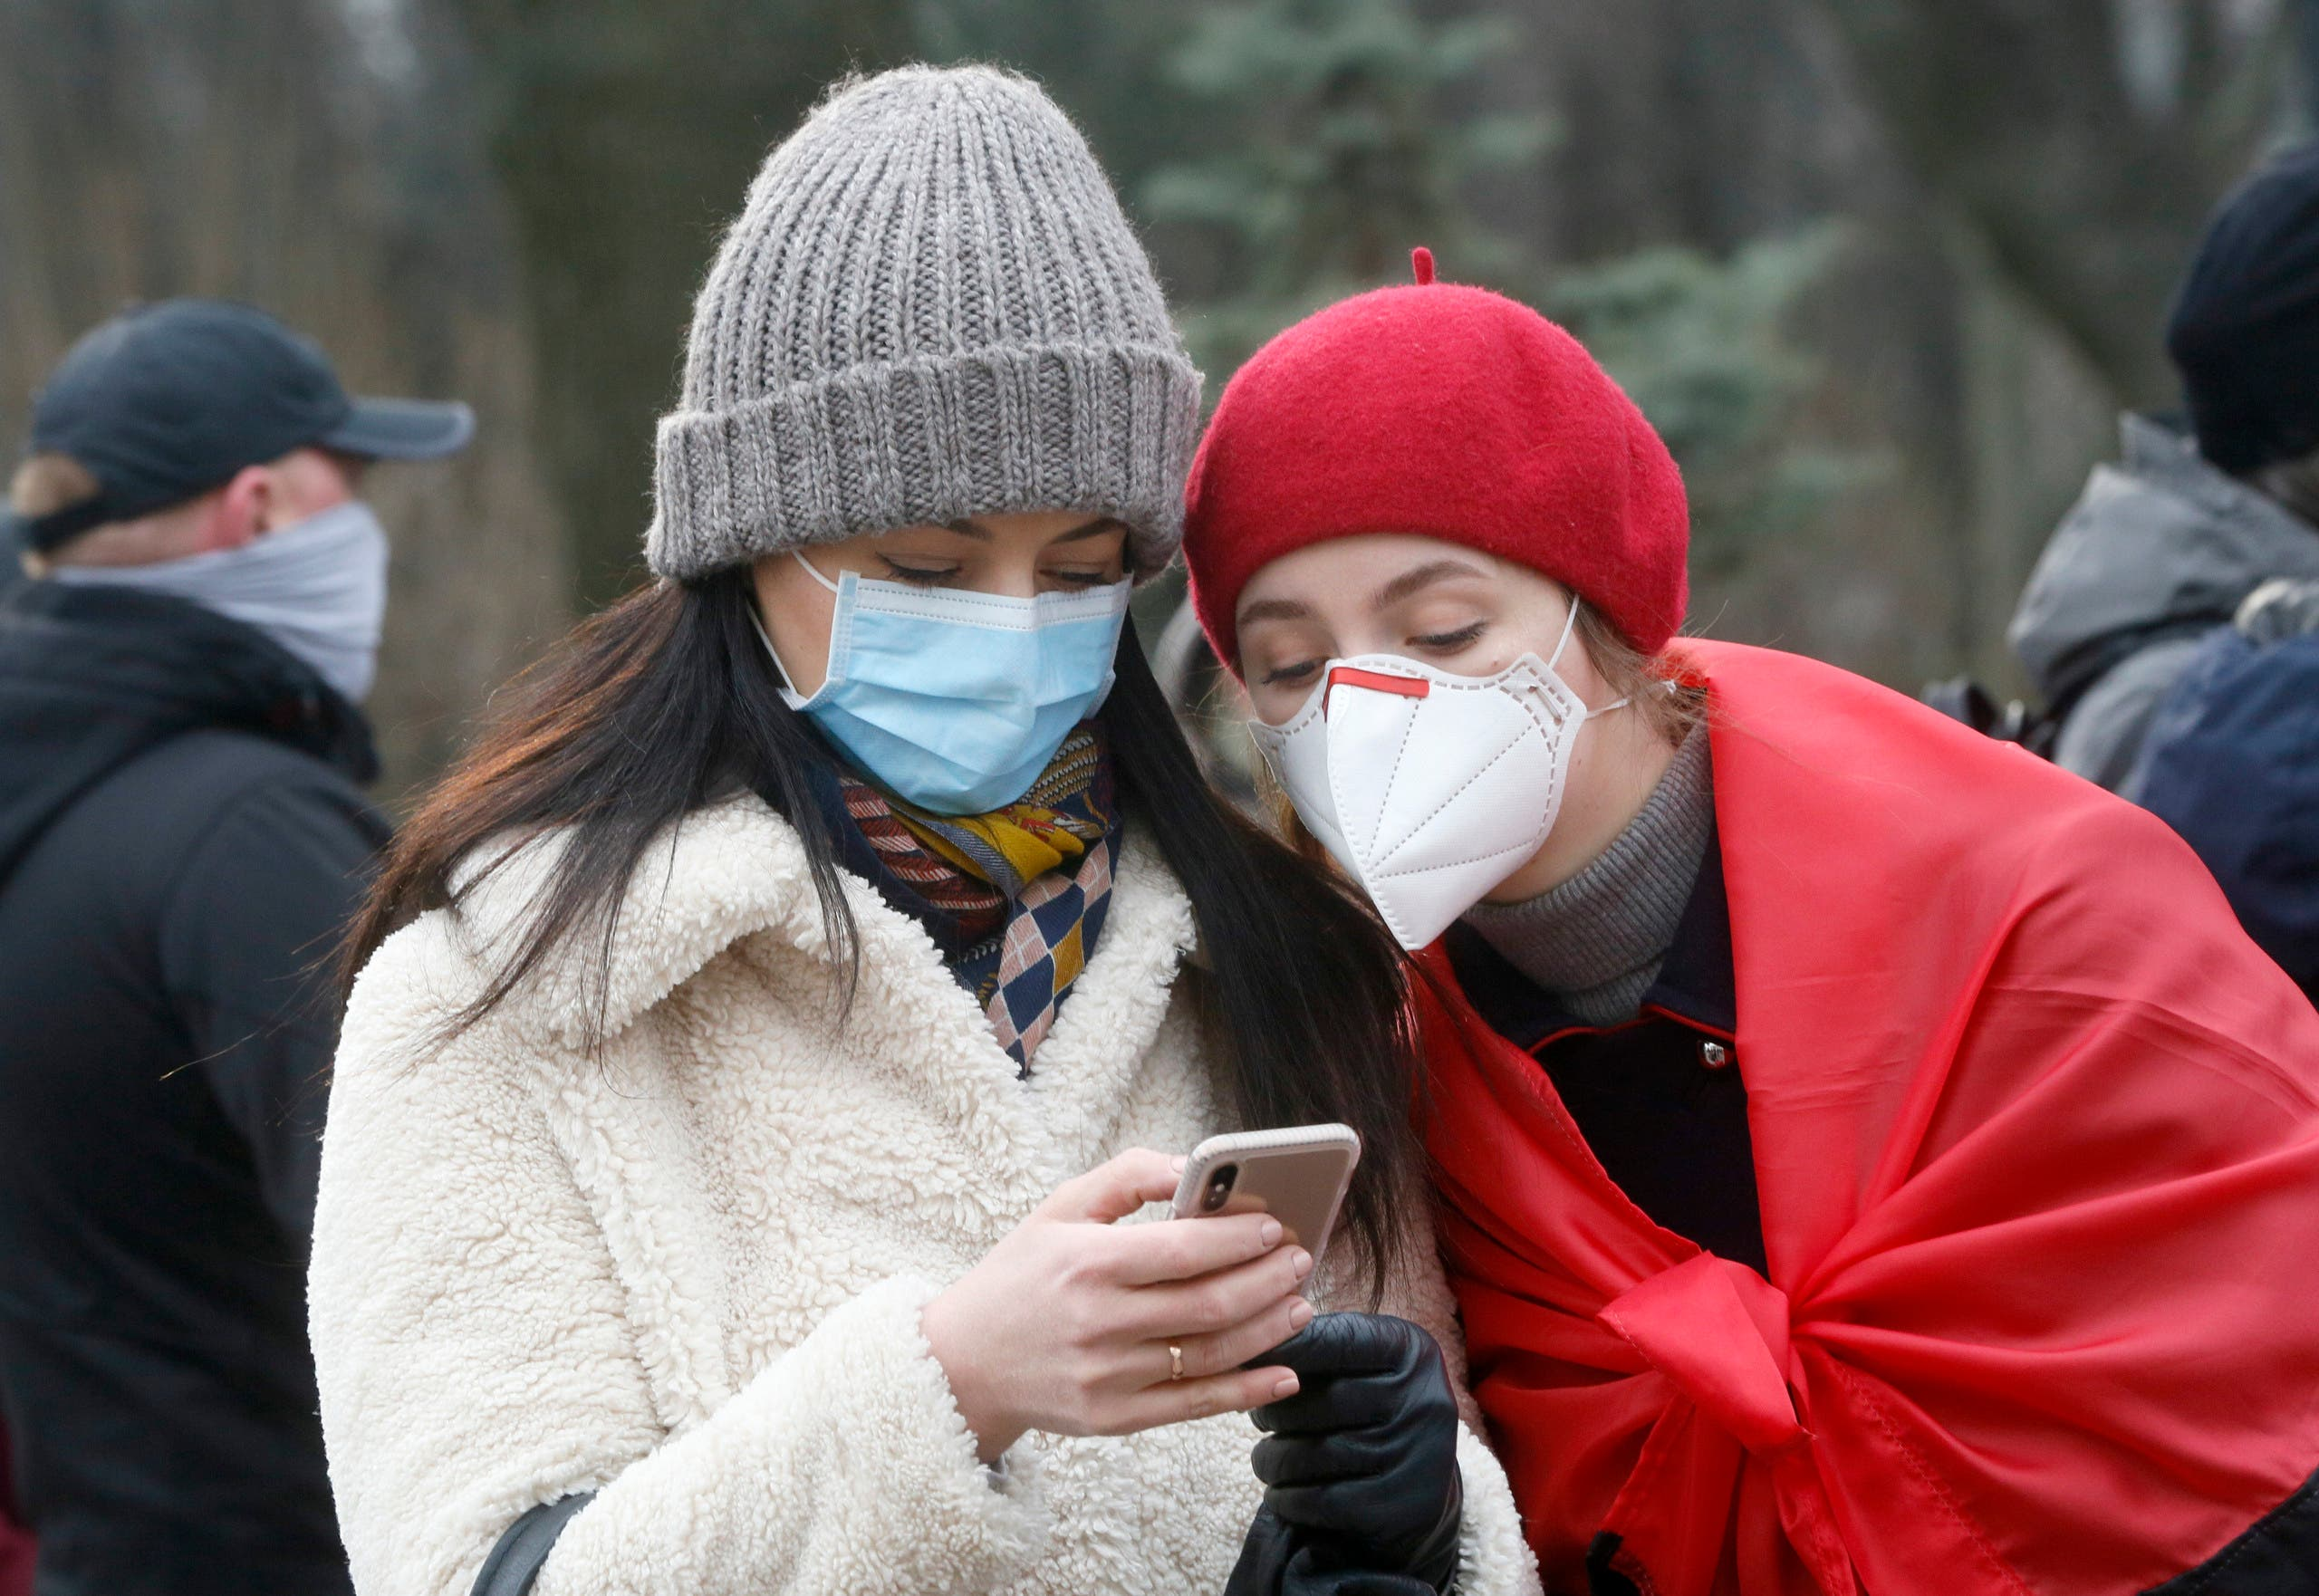 Two women wearing face masks look at the latest news on a phone. (File photo: AP)